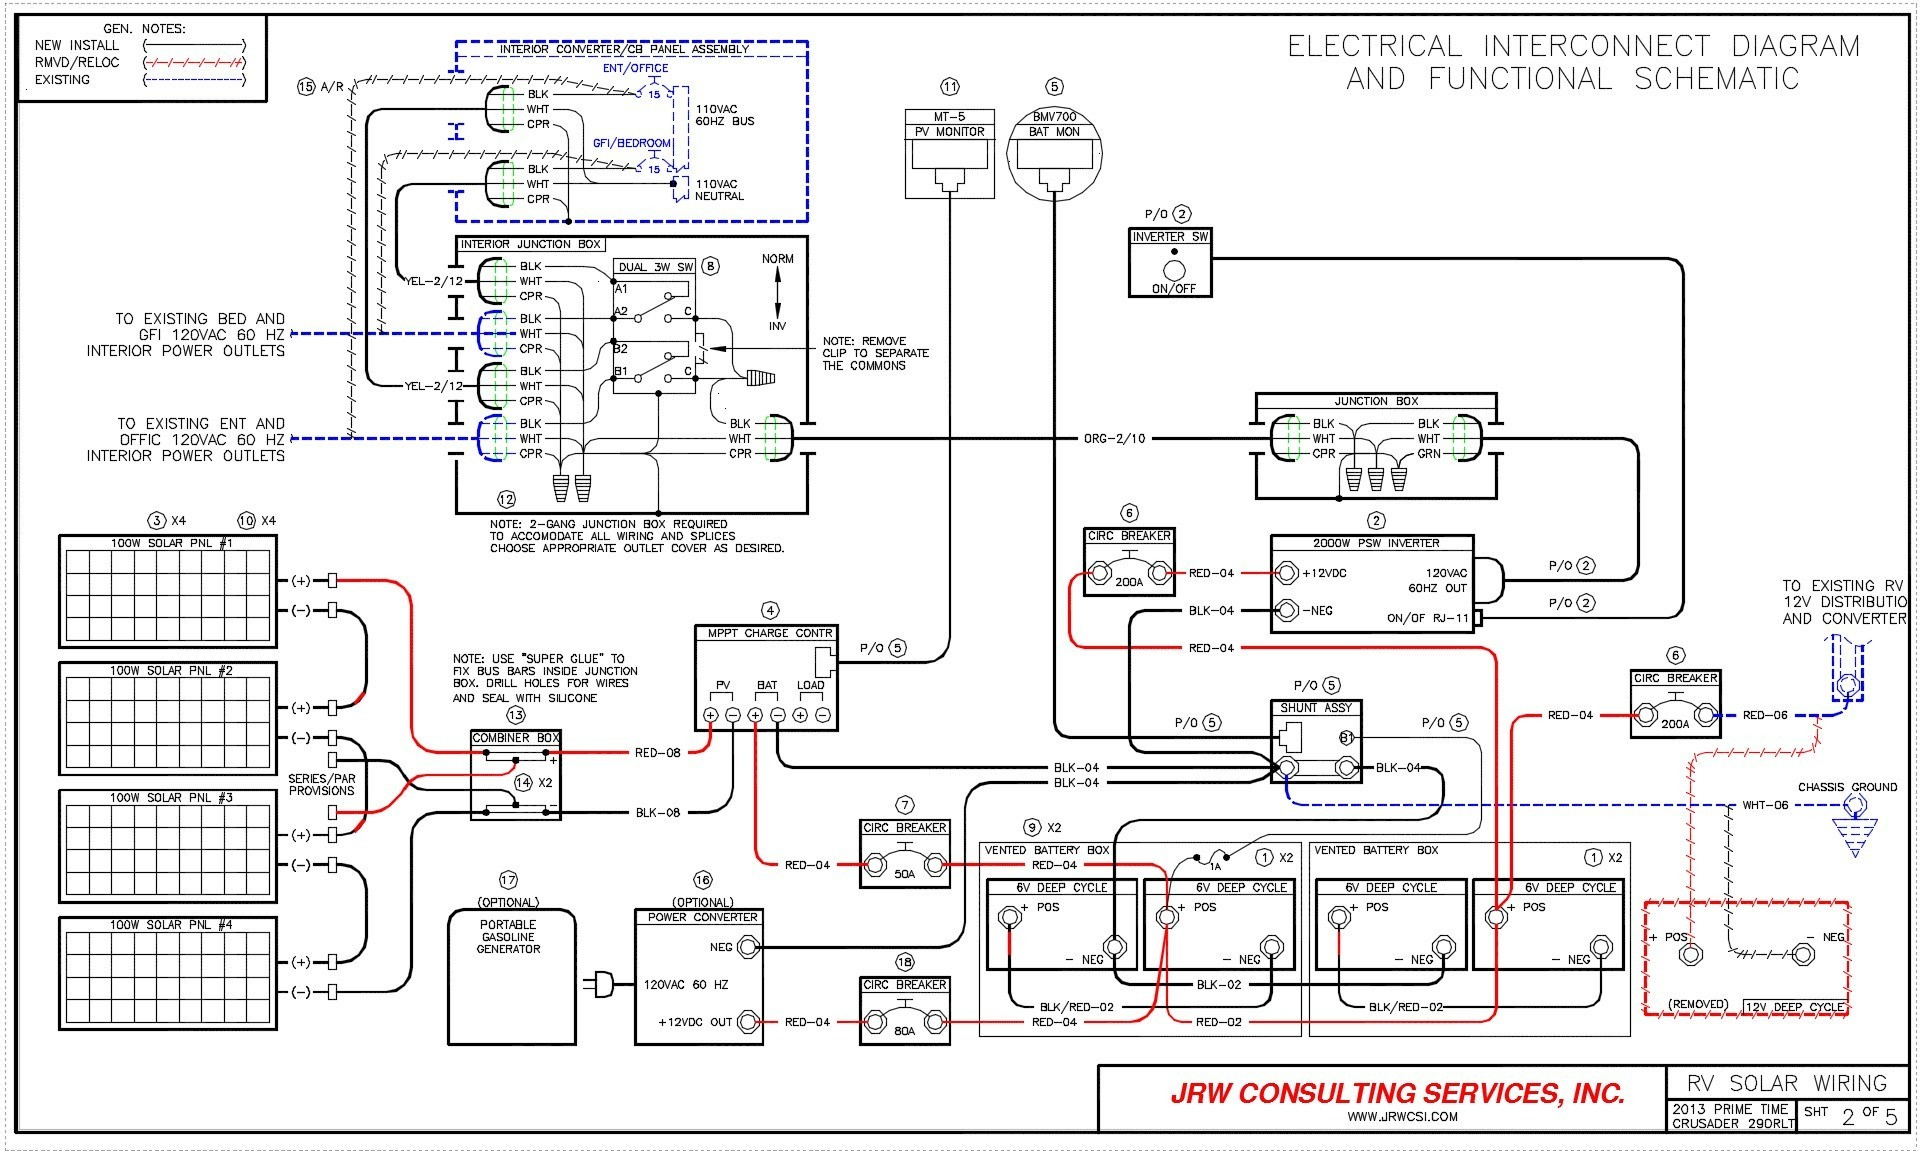 Holiday Rambler Rv Wiring Diagram - Data Wiring Diagram Today - Monaco Rv Wiring Diagram